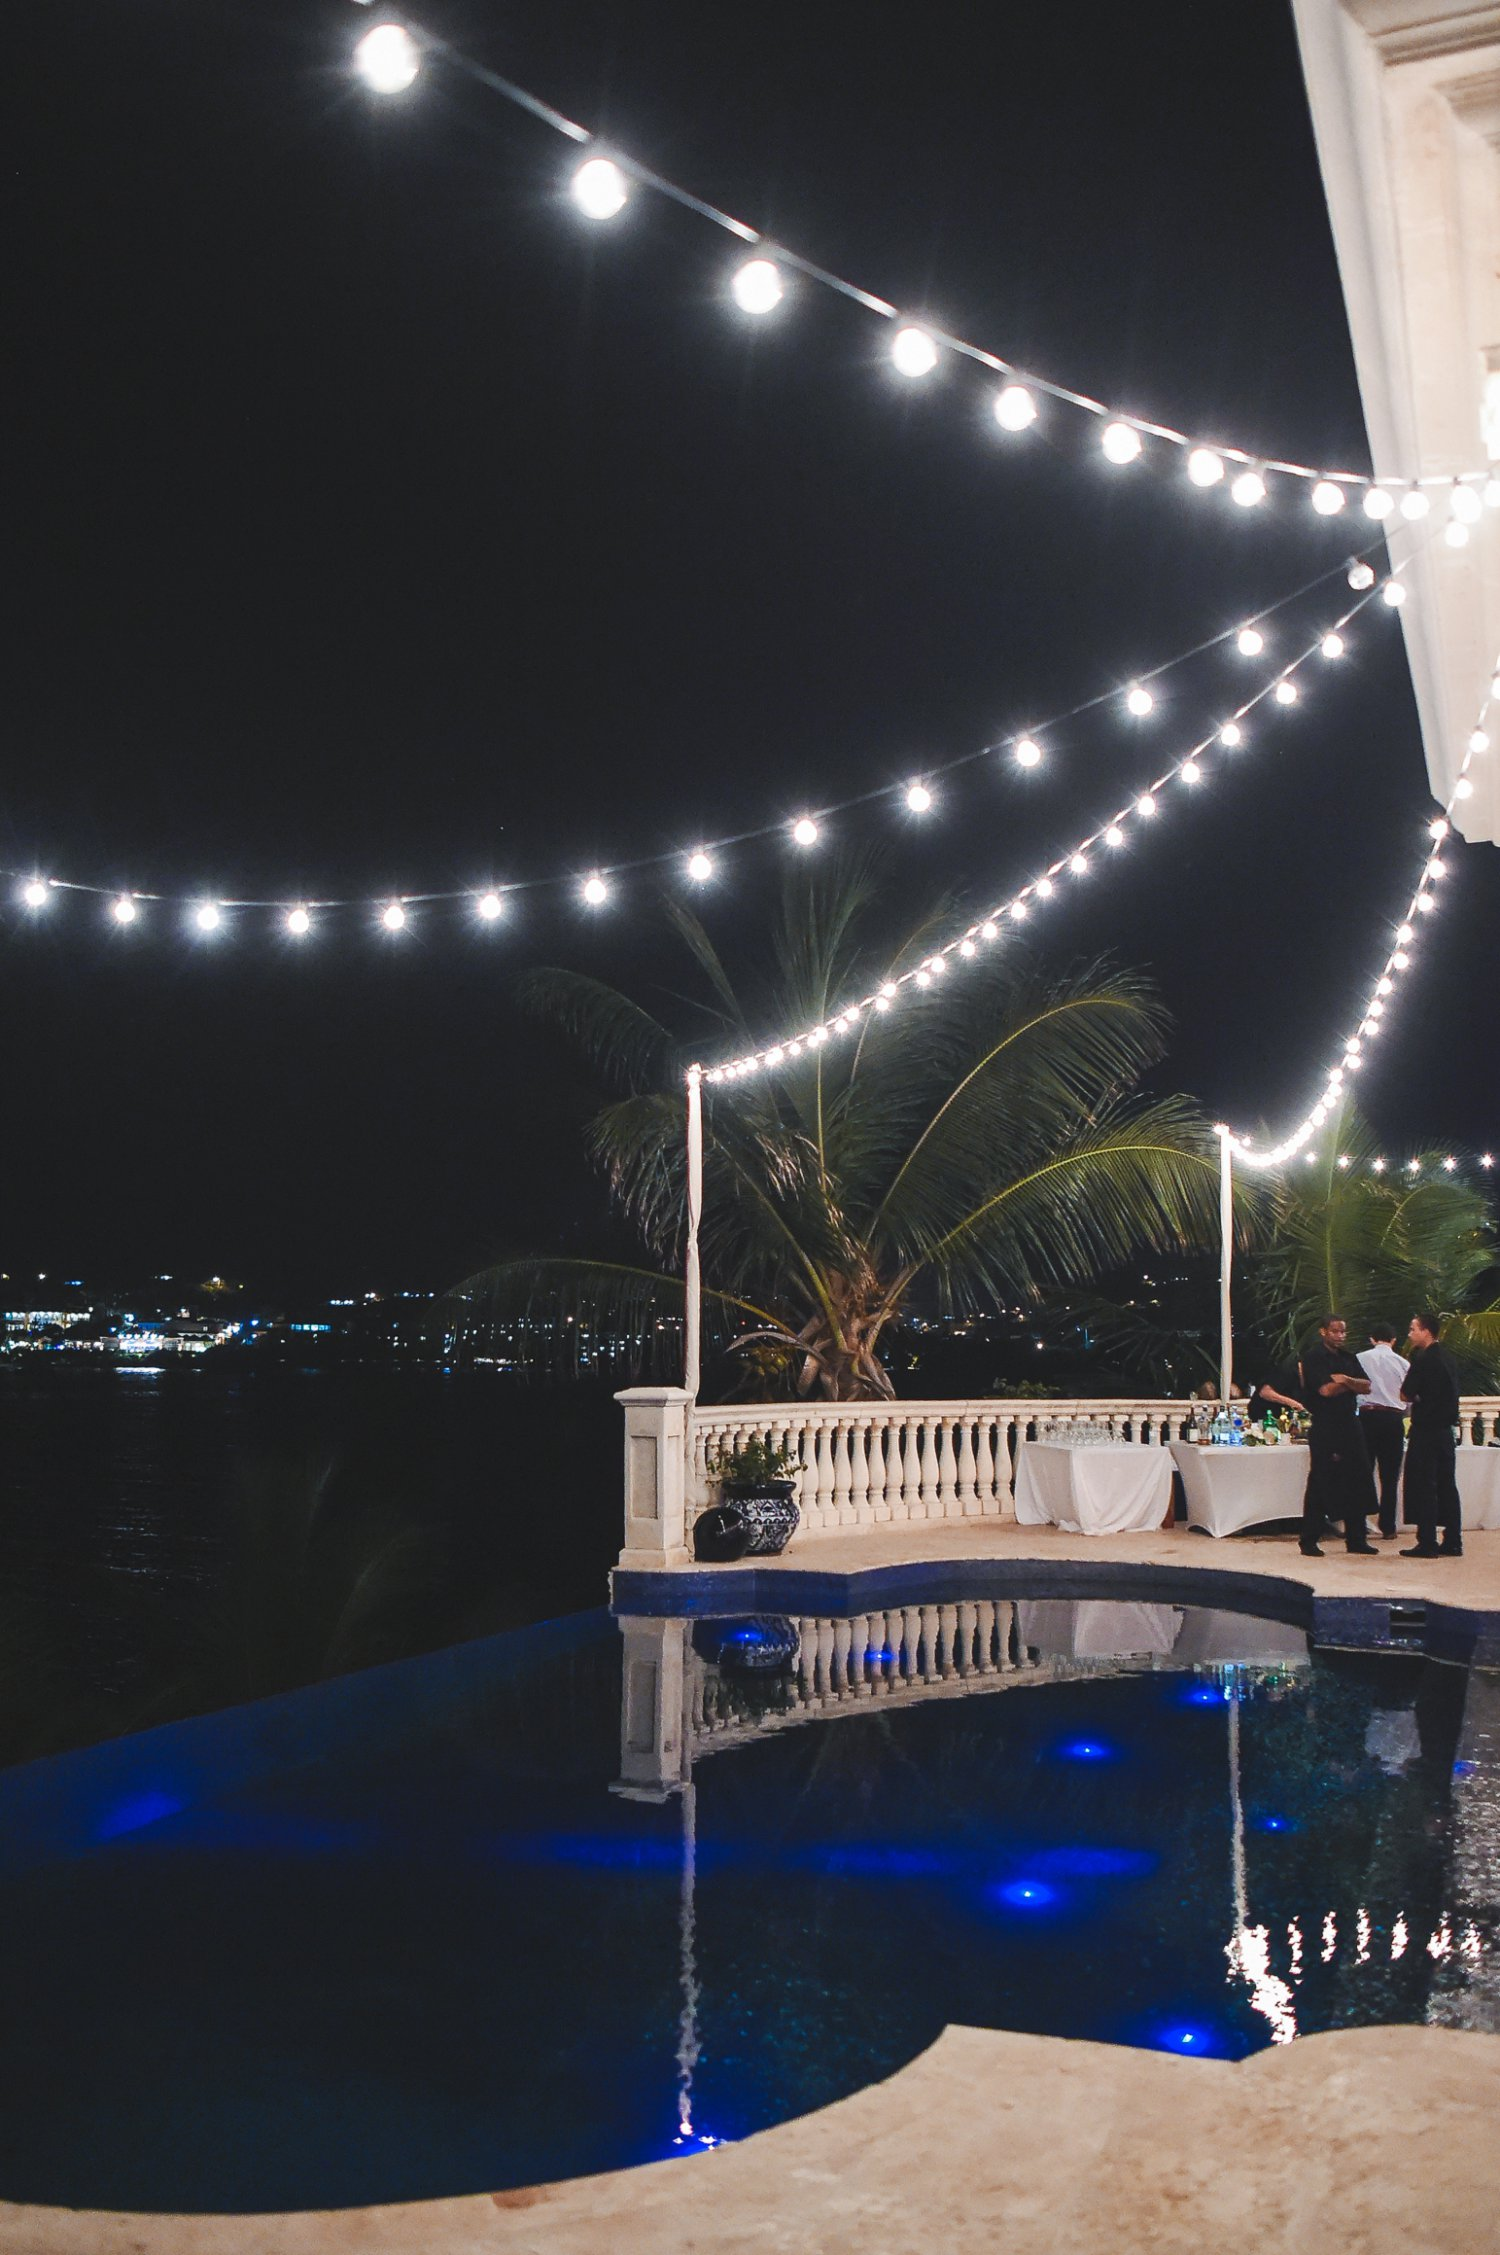 Bistro lights hung over pool in starburst pattern at private home reception venue in St. Thomas.